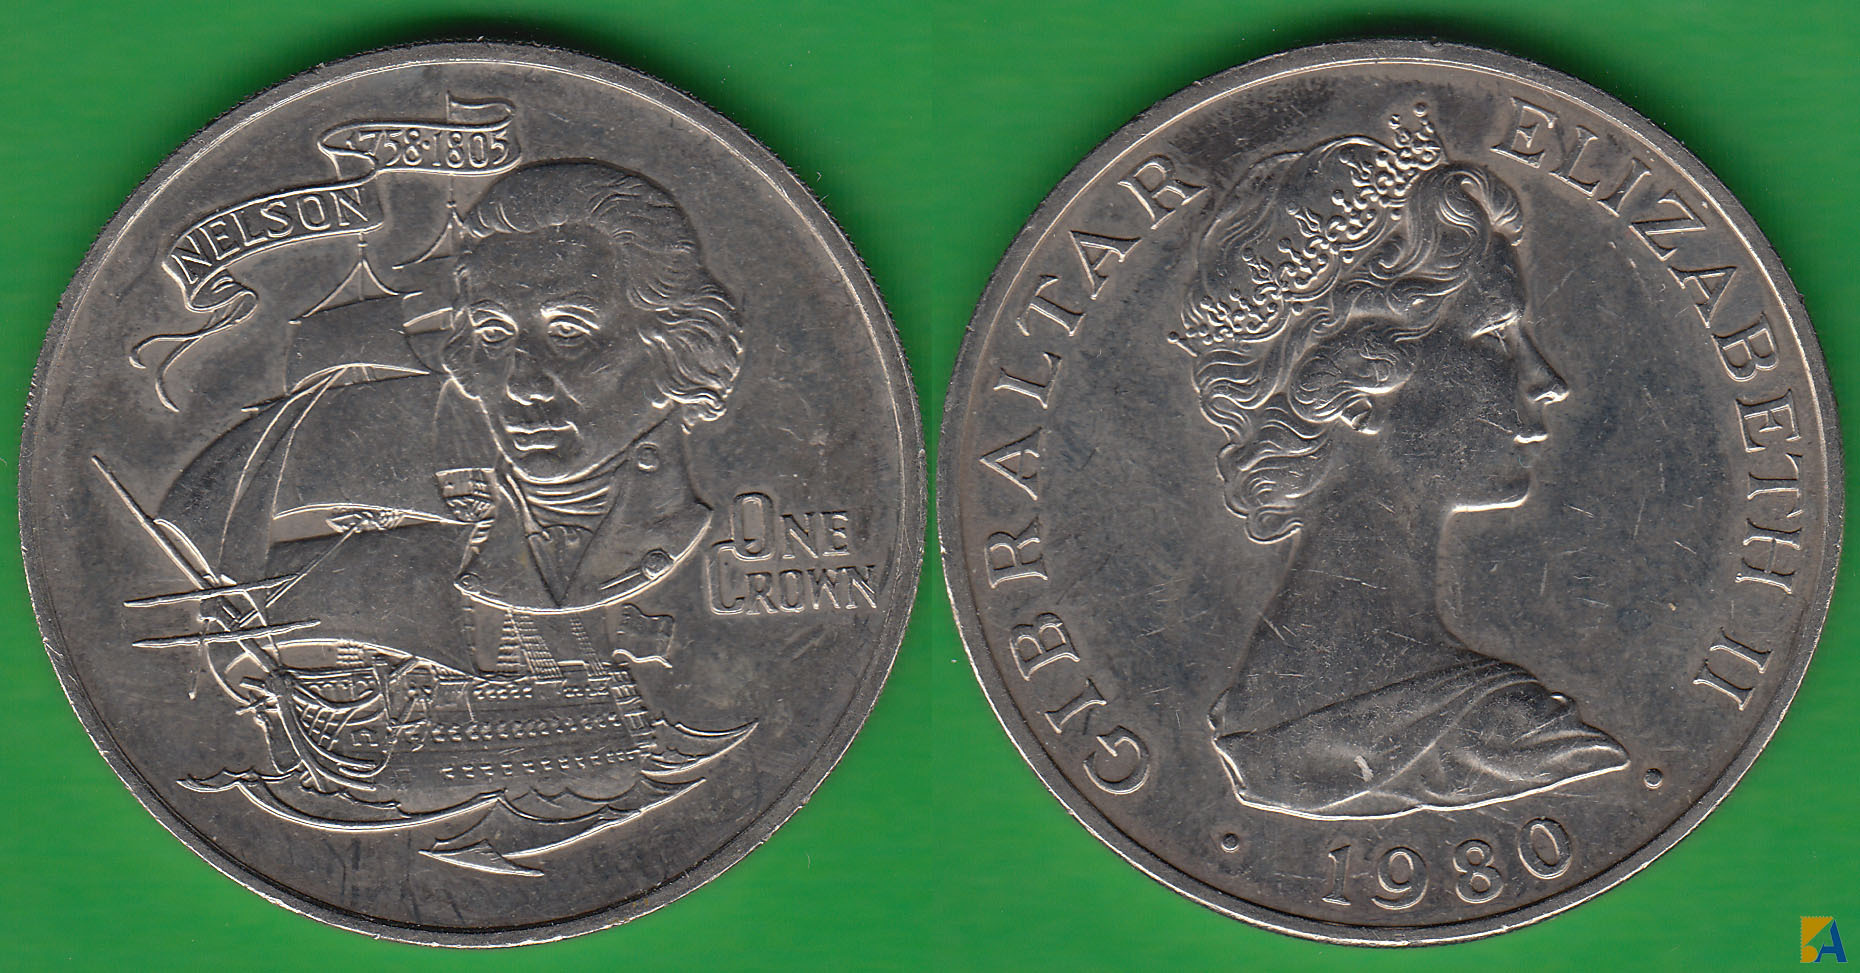 GIBRALTAR. 1 CORONA (CROWN) DE 1980. (2)